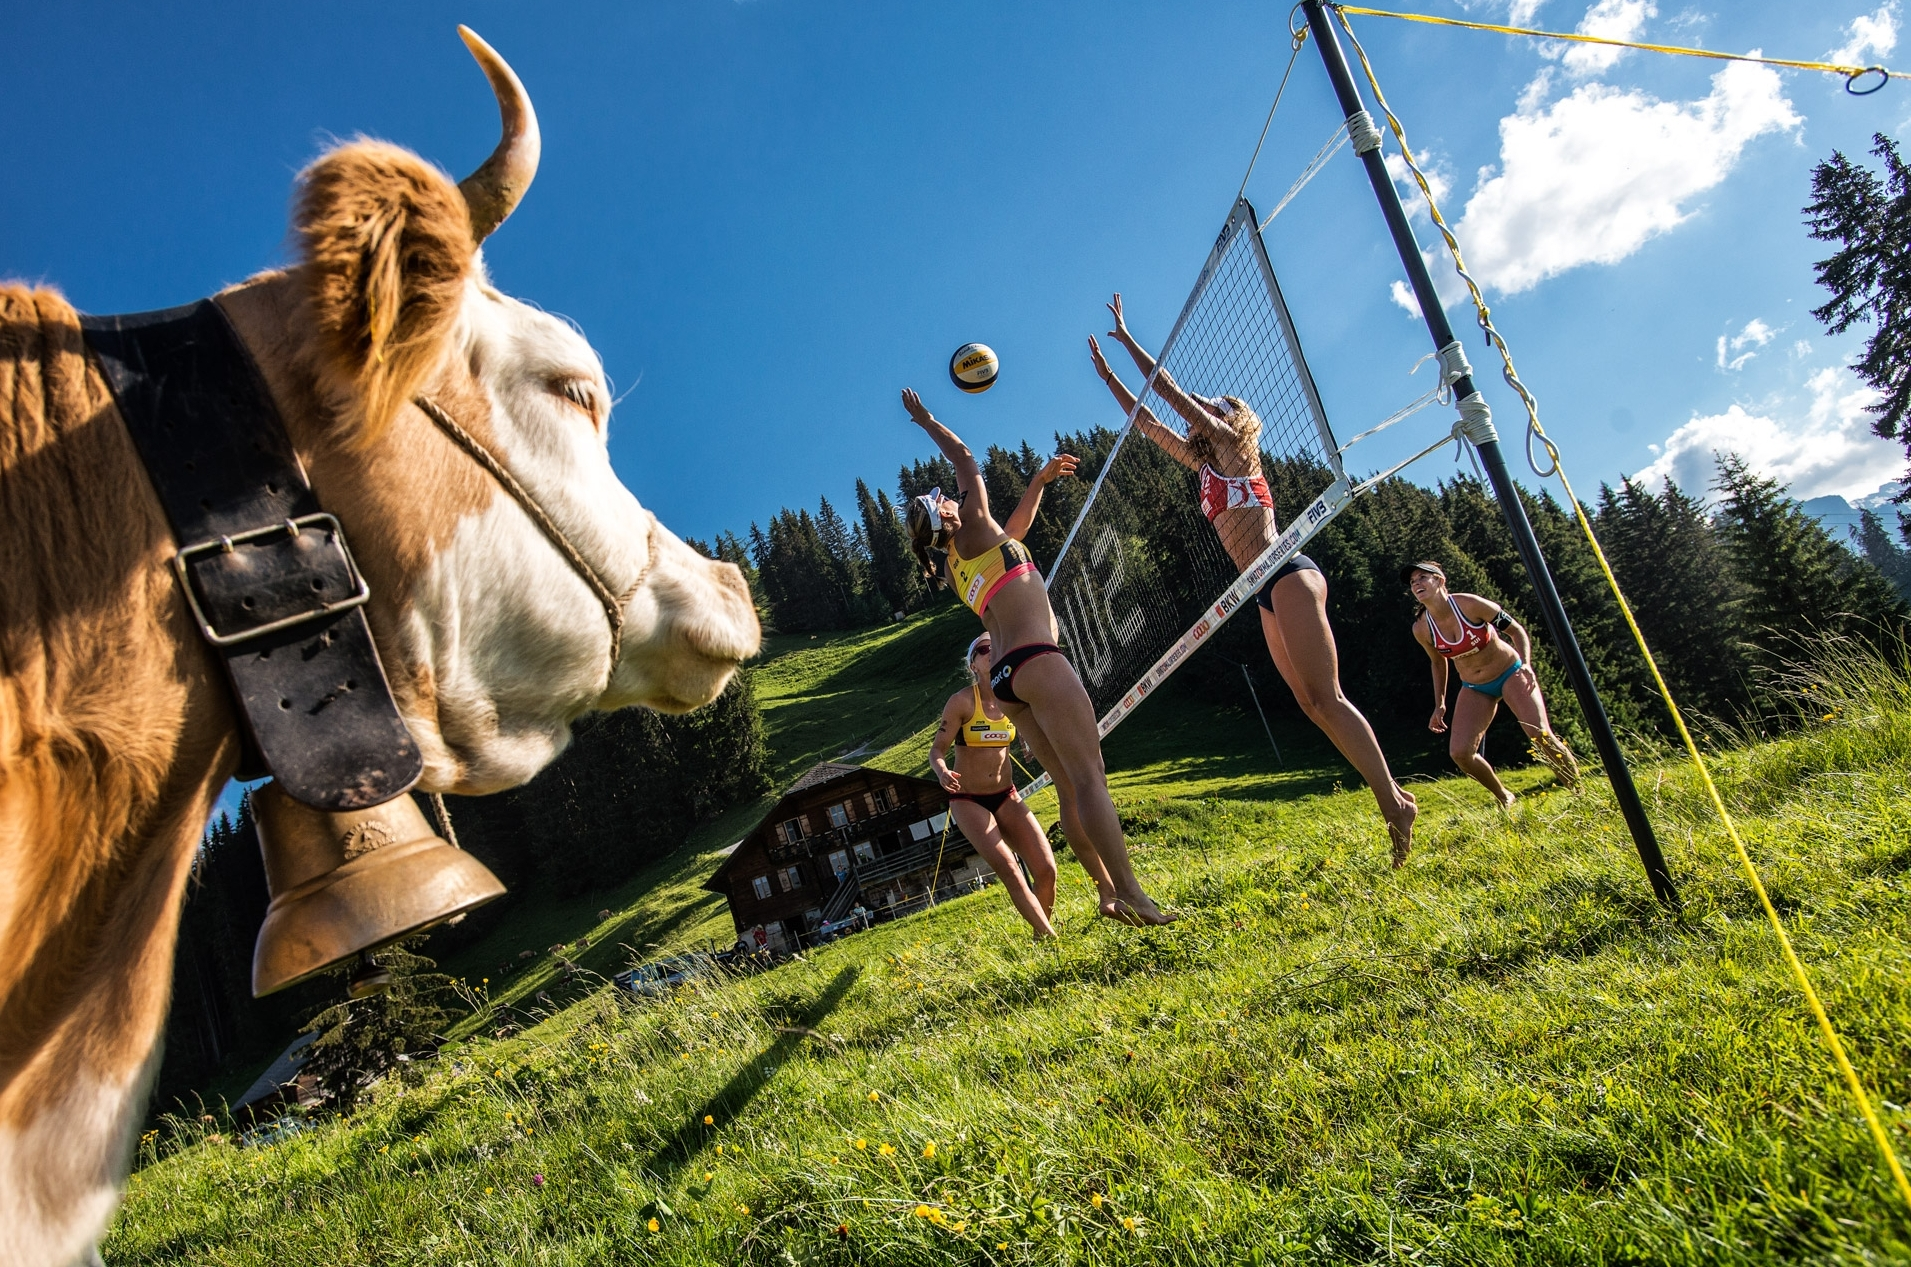 This Swiss cow keeps a close eye on this mountain-side match. Photocredit: Mihai Stetcu.